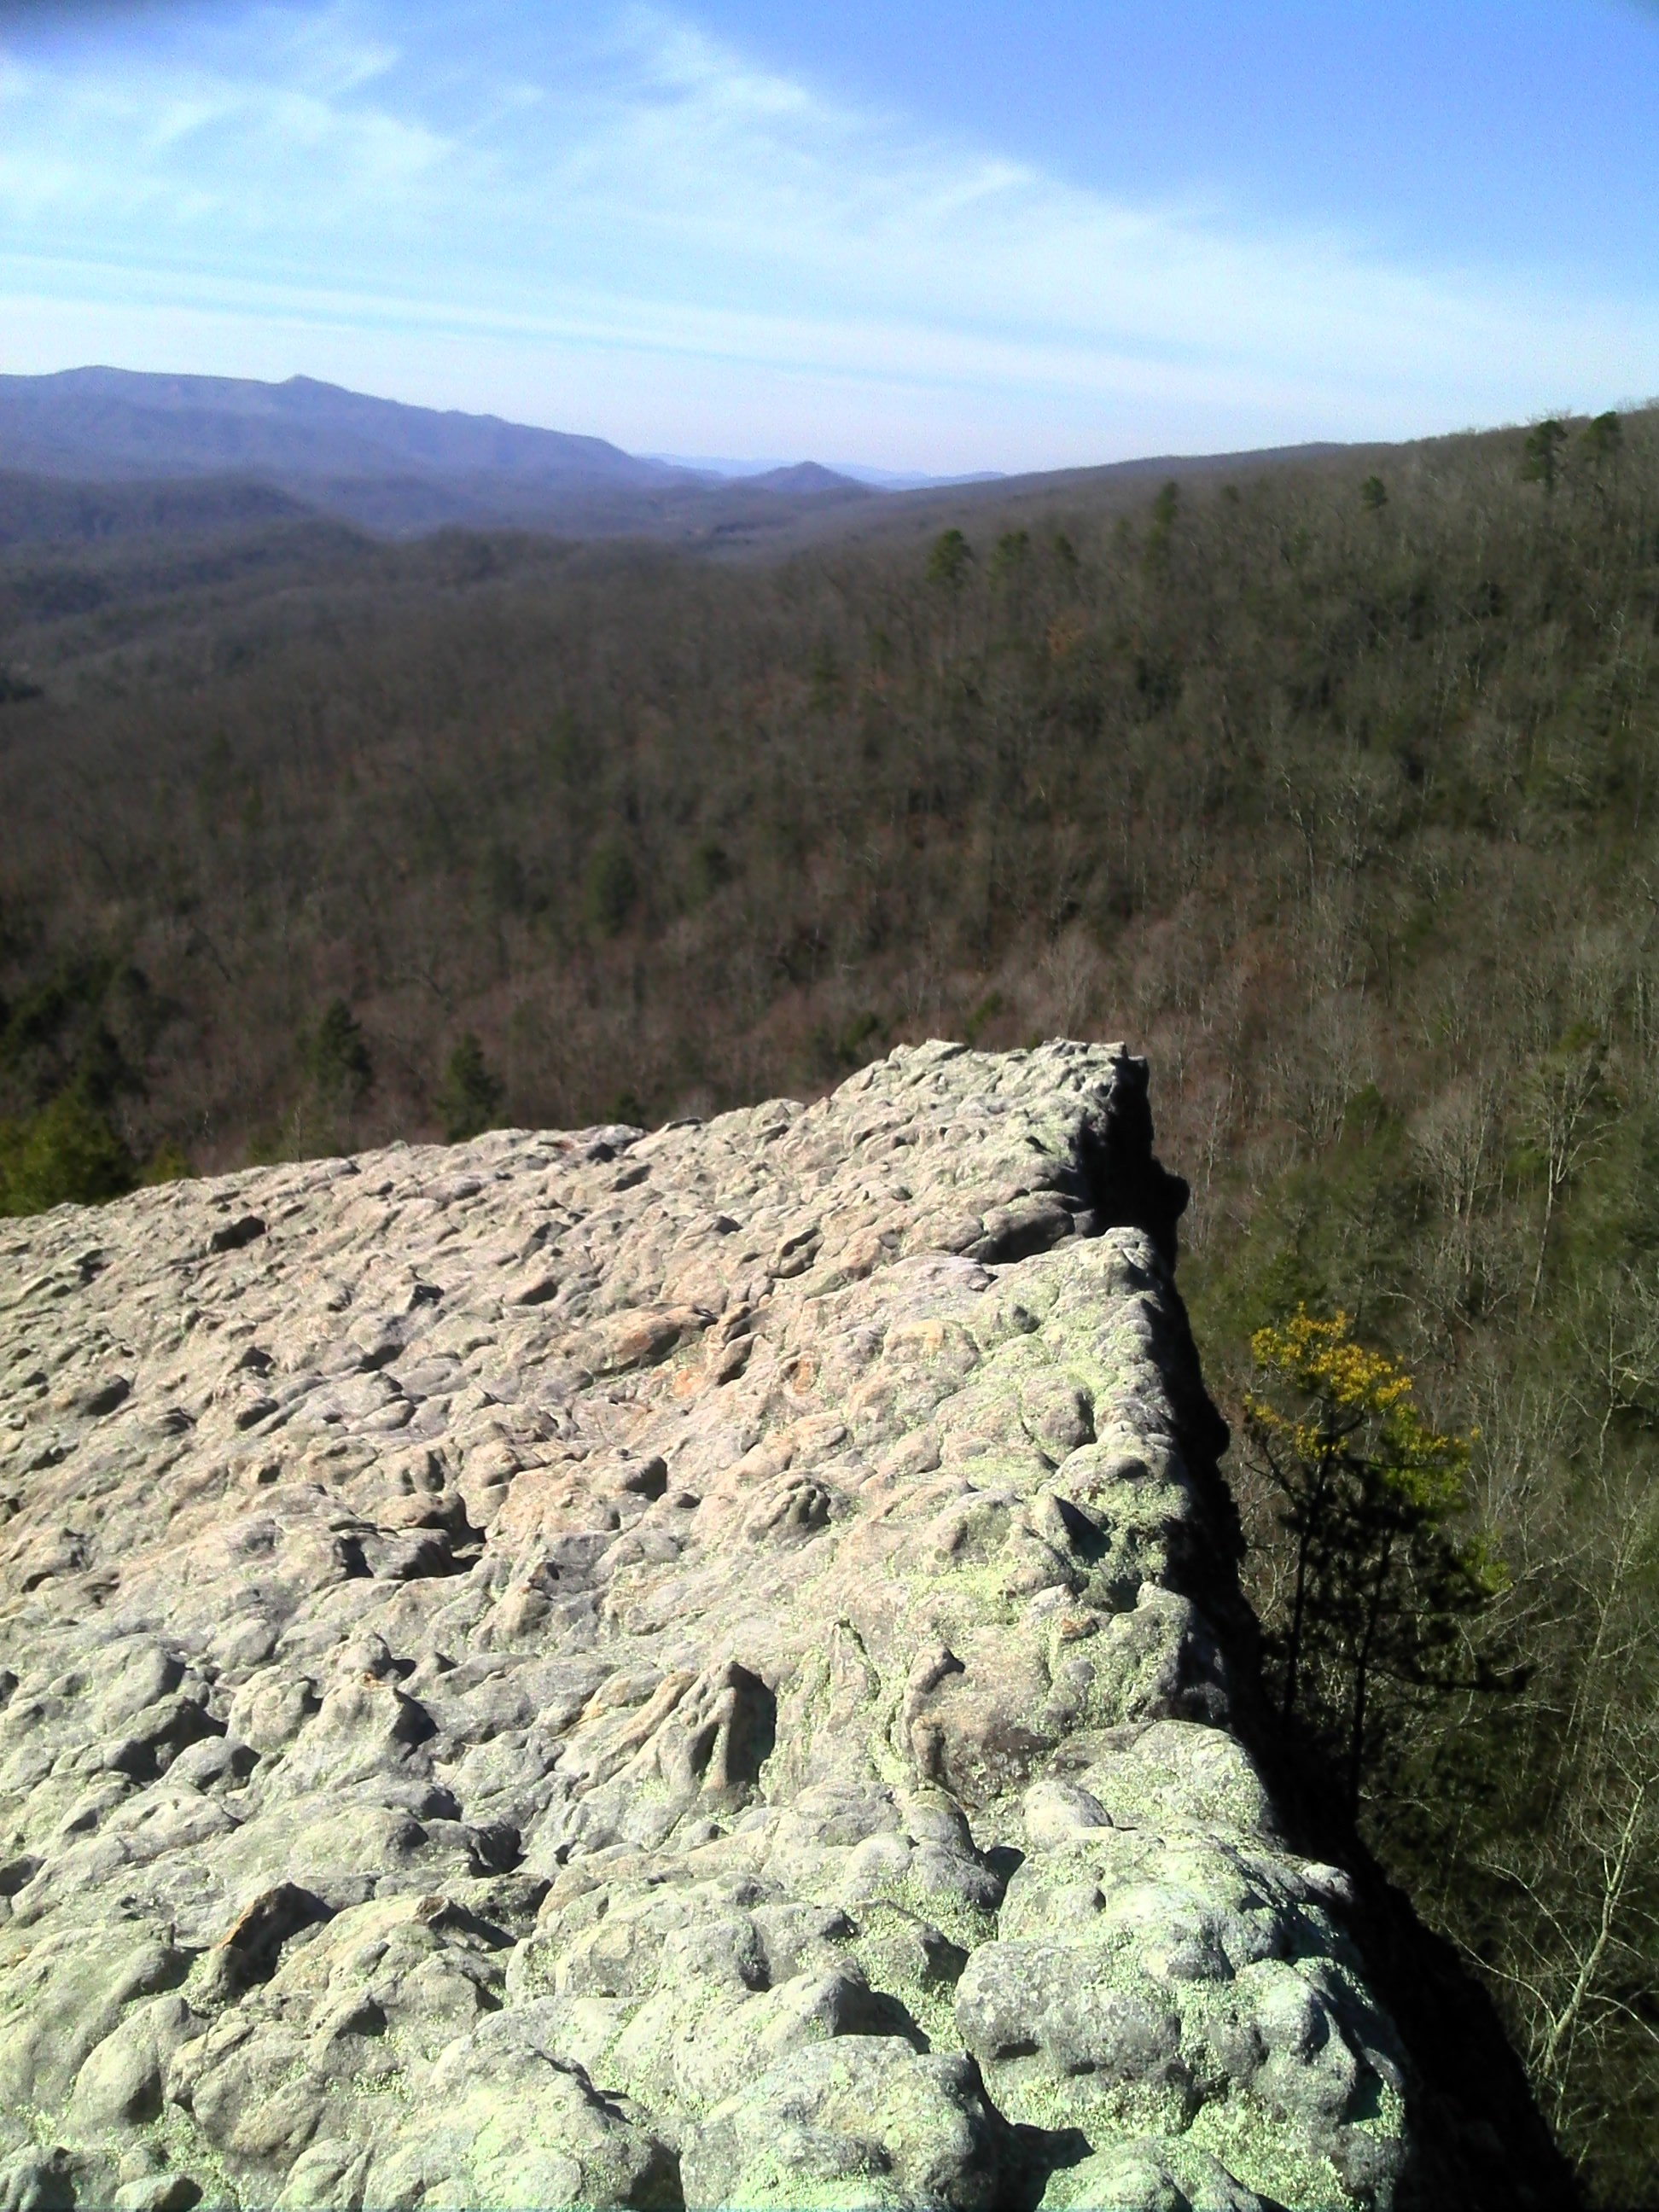 A bluff overlooks Blanton Forest. Photo by ZebWeese.